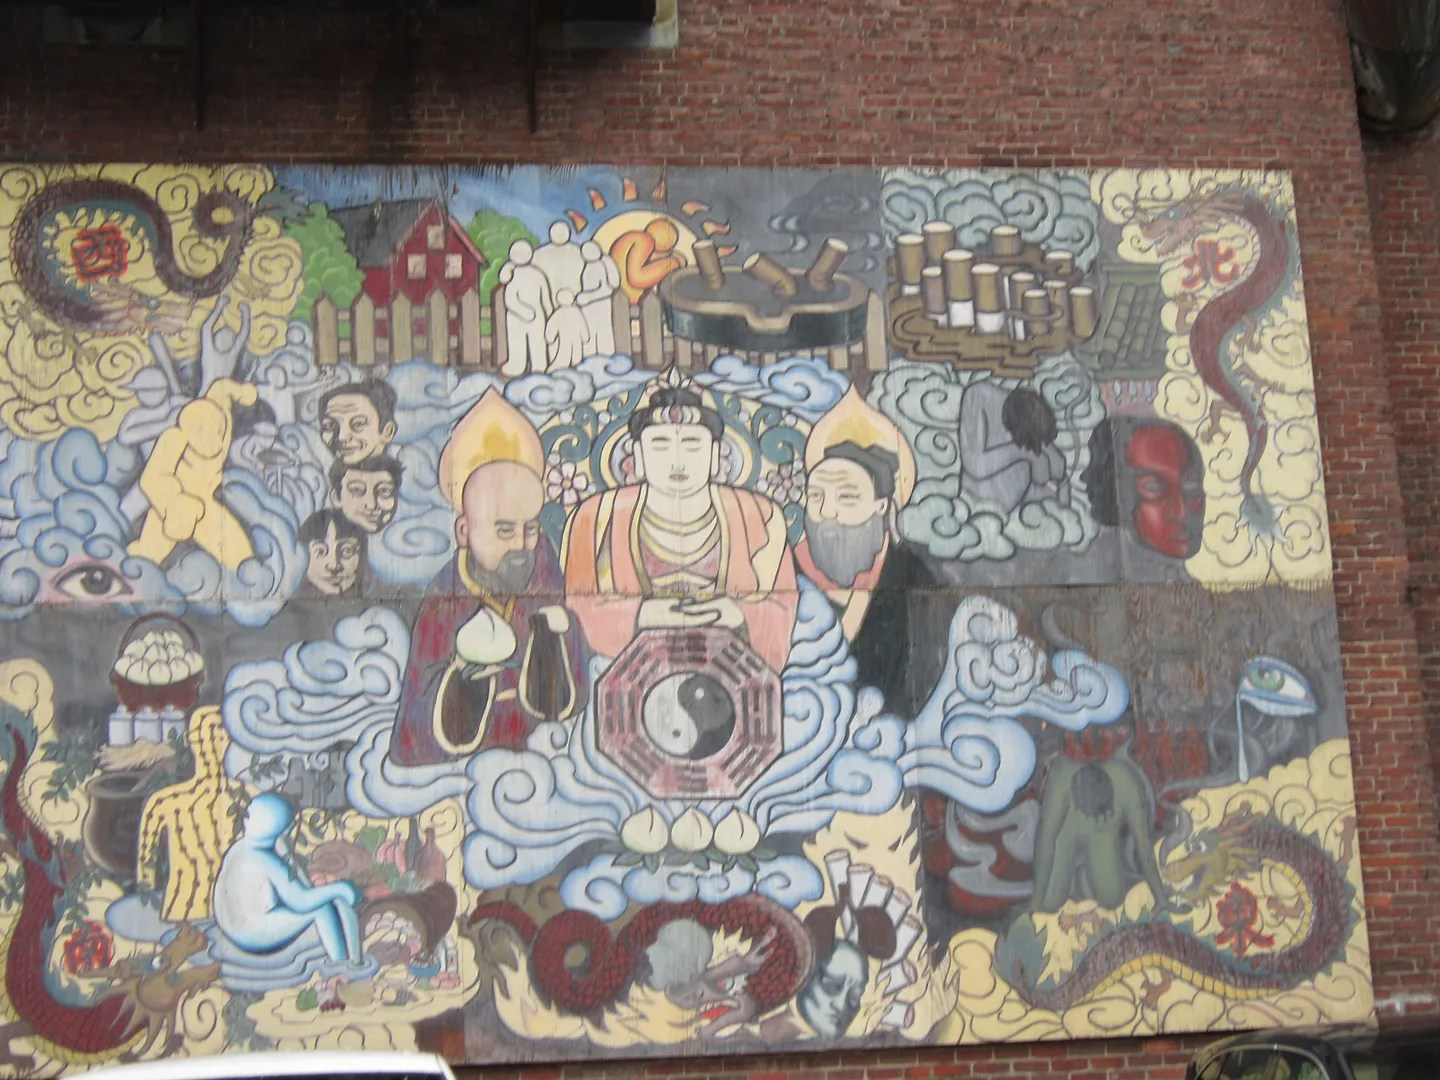 Chinatown art, Boston